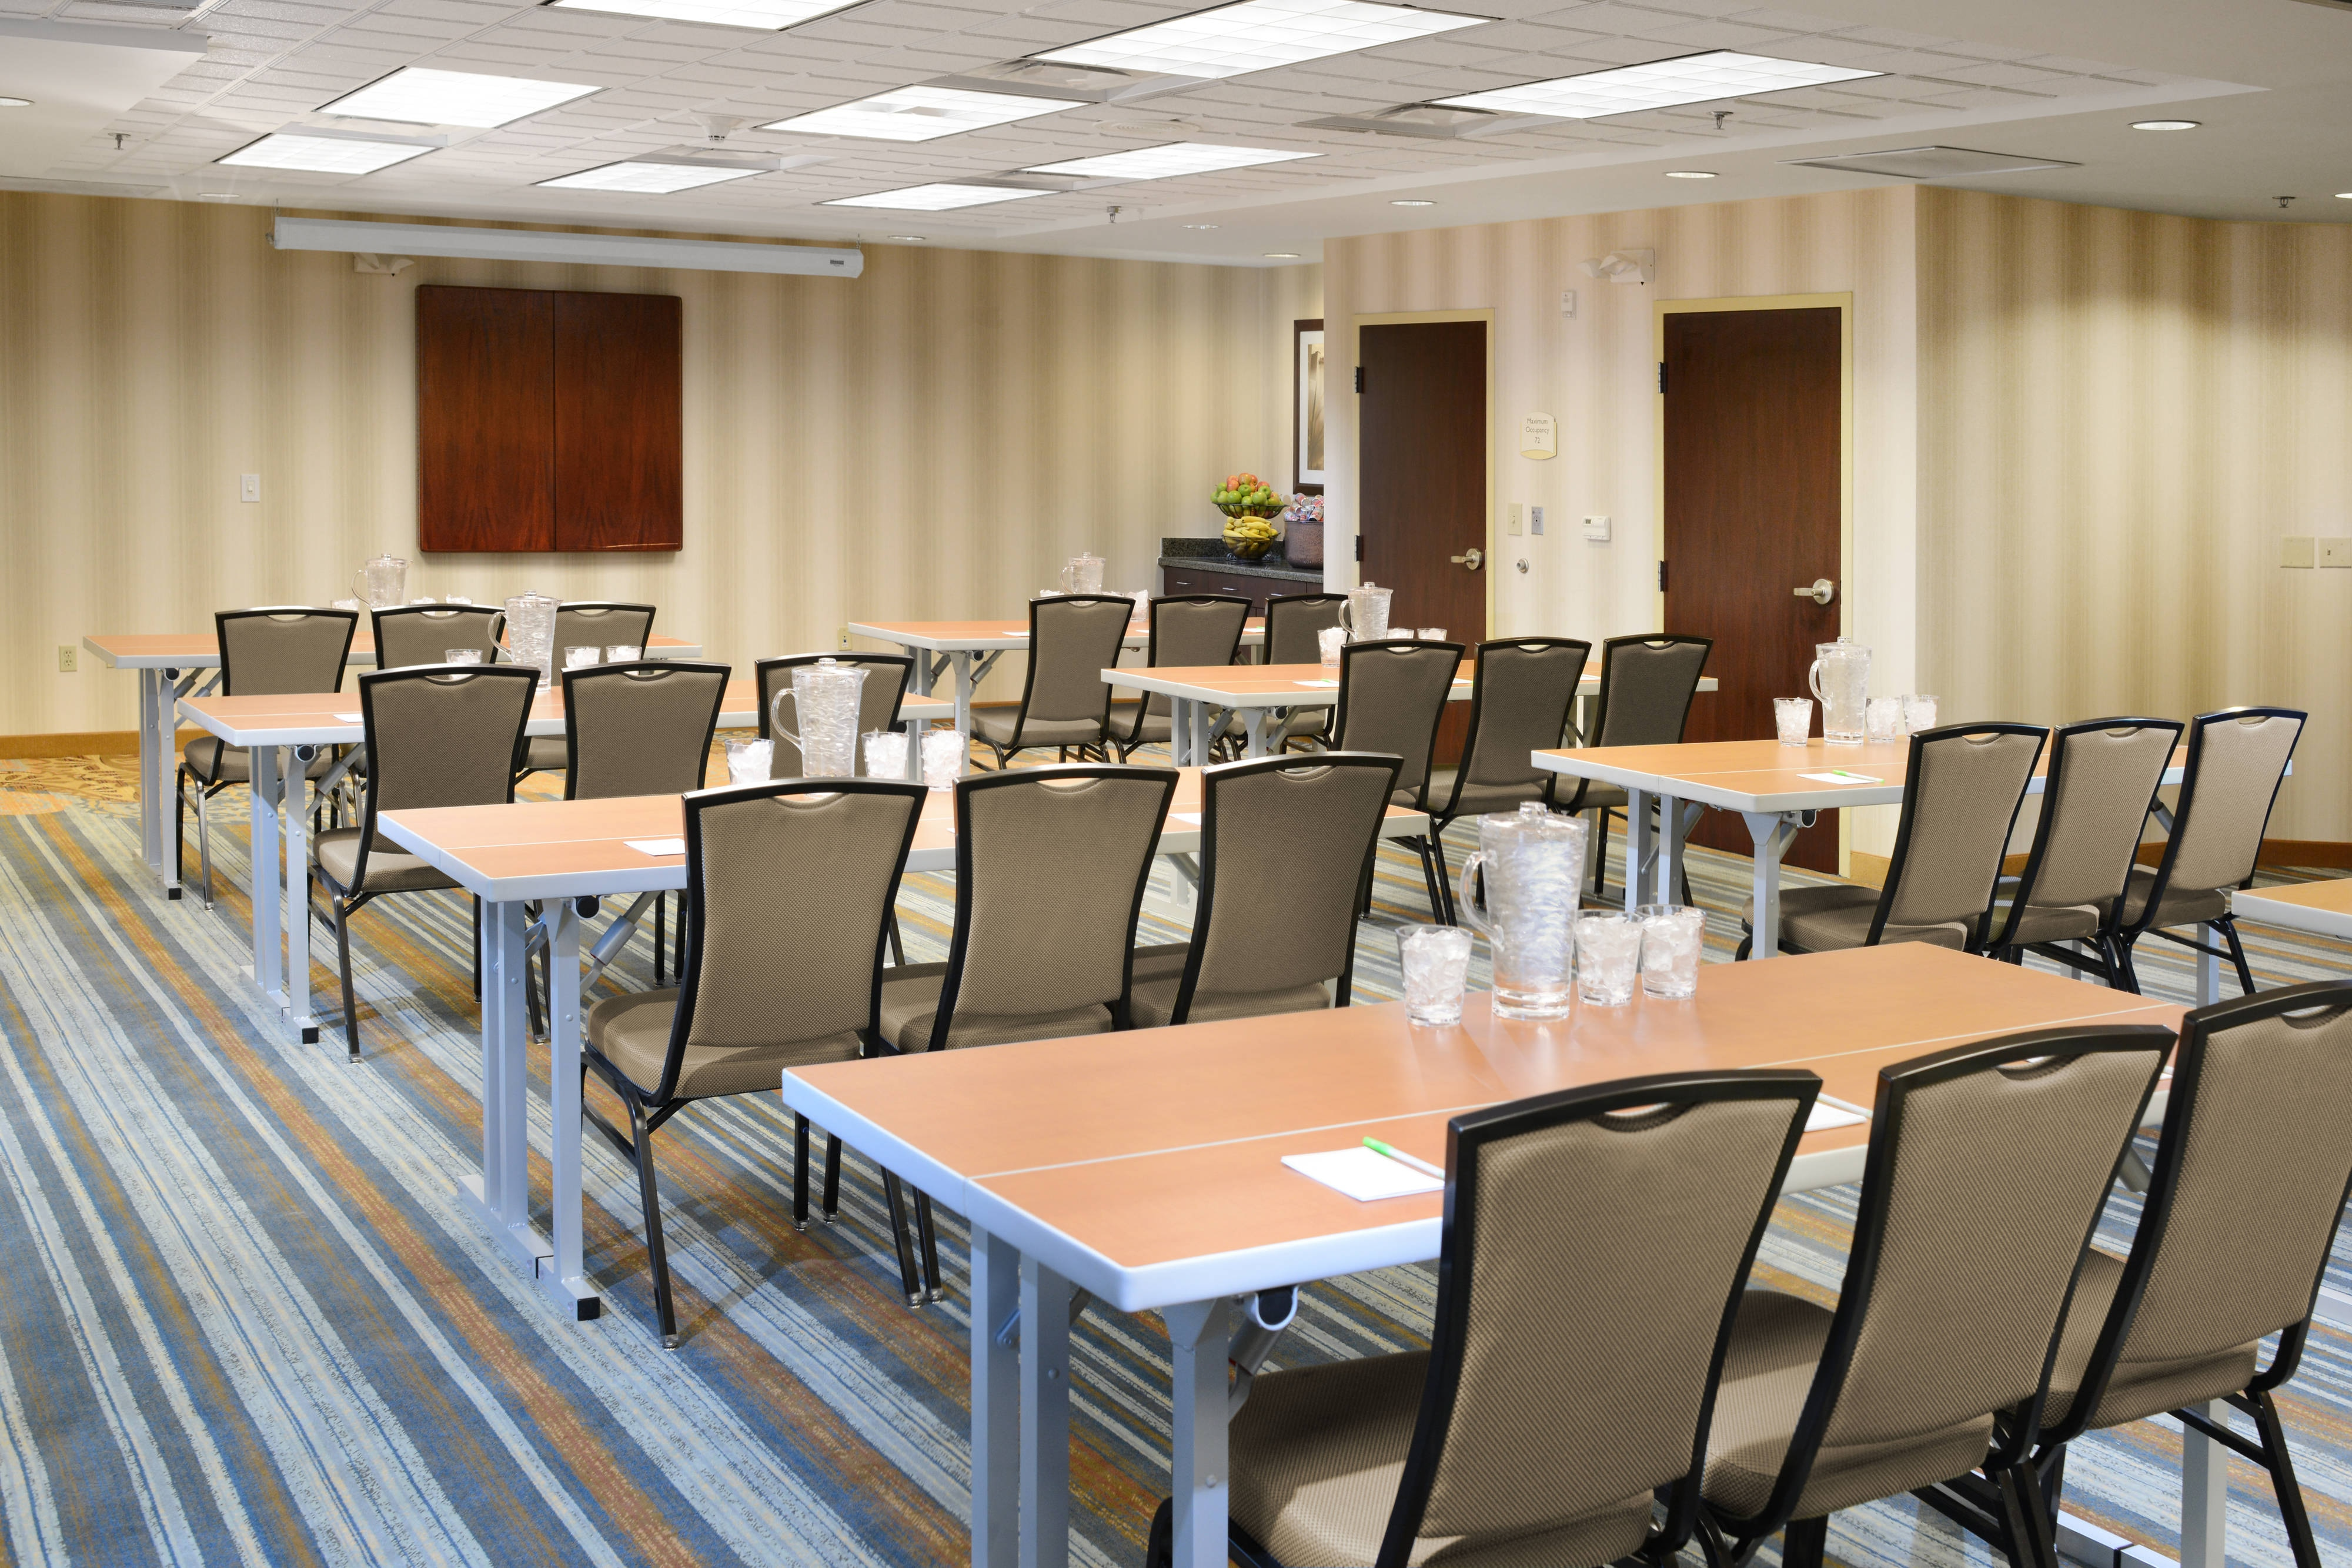 SpringHill Suites Meeting Room